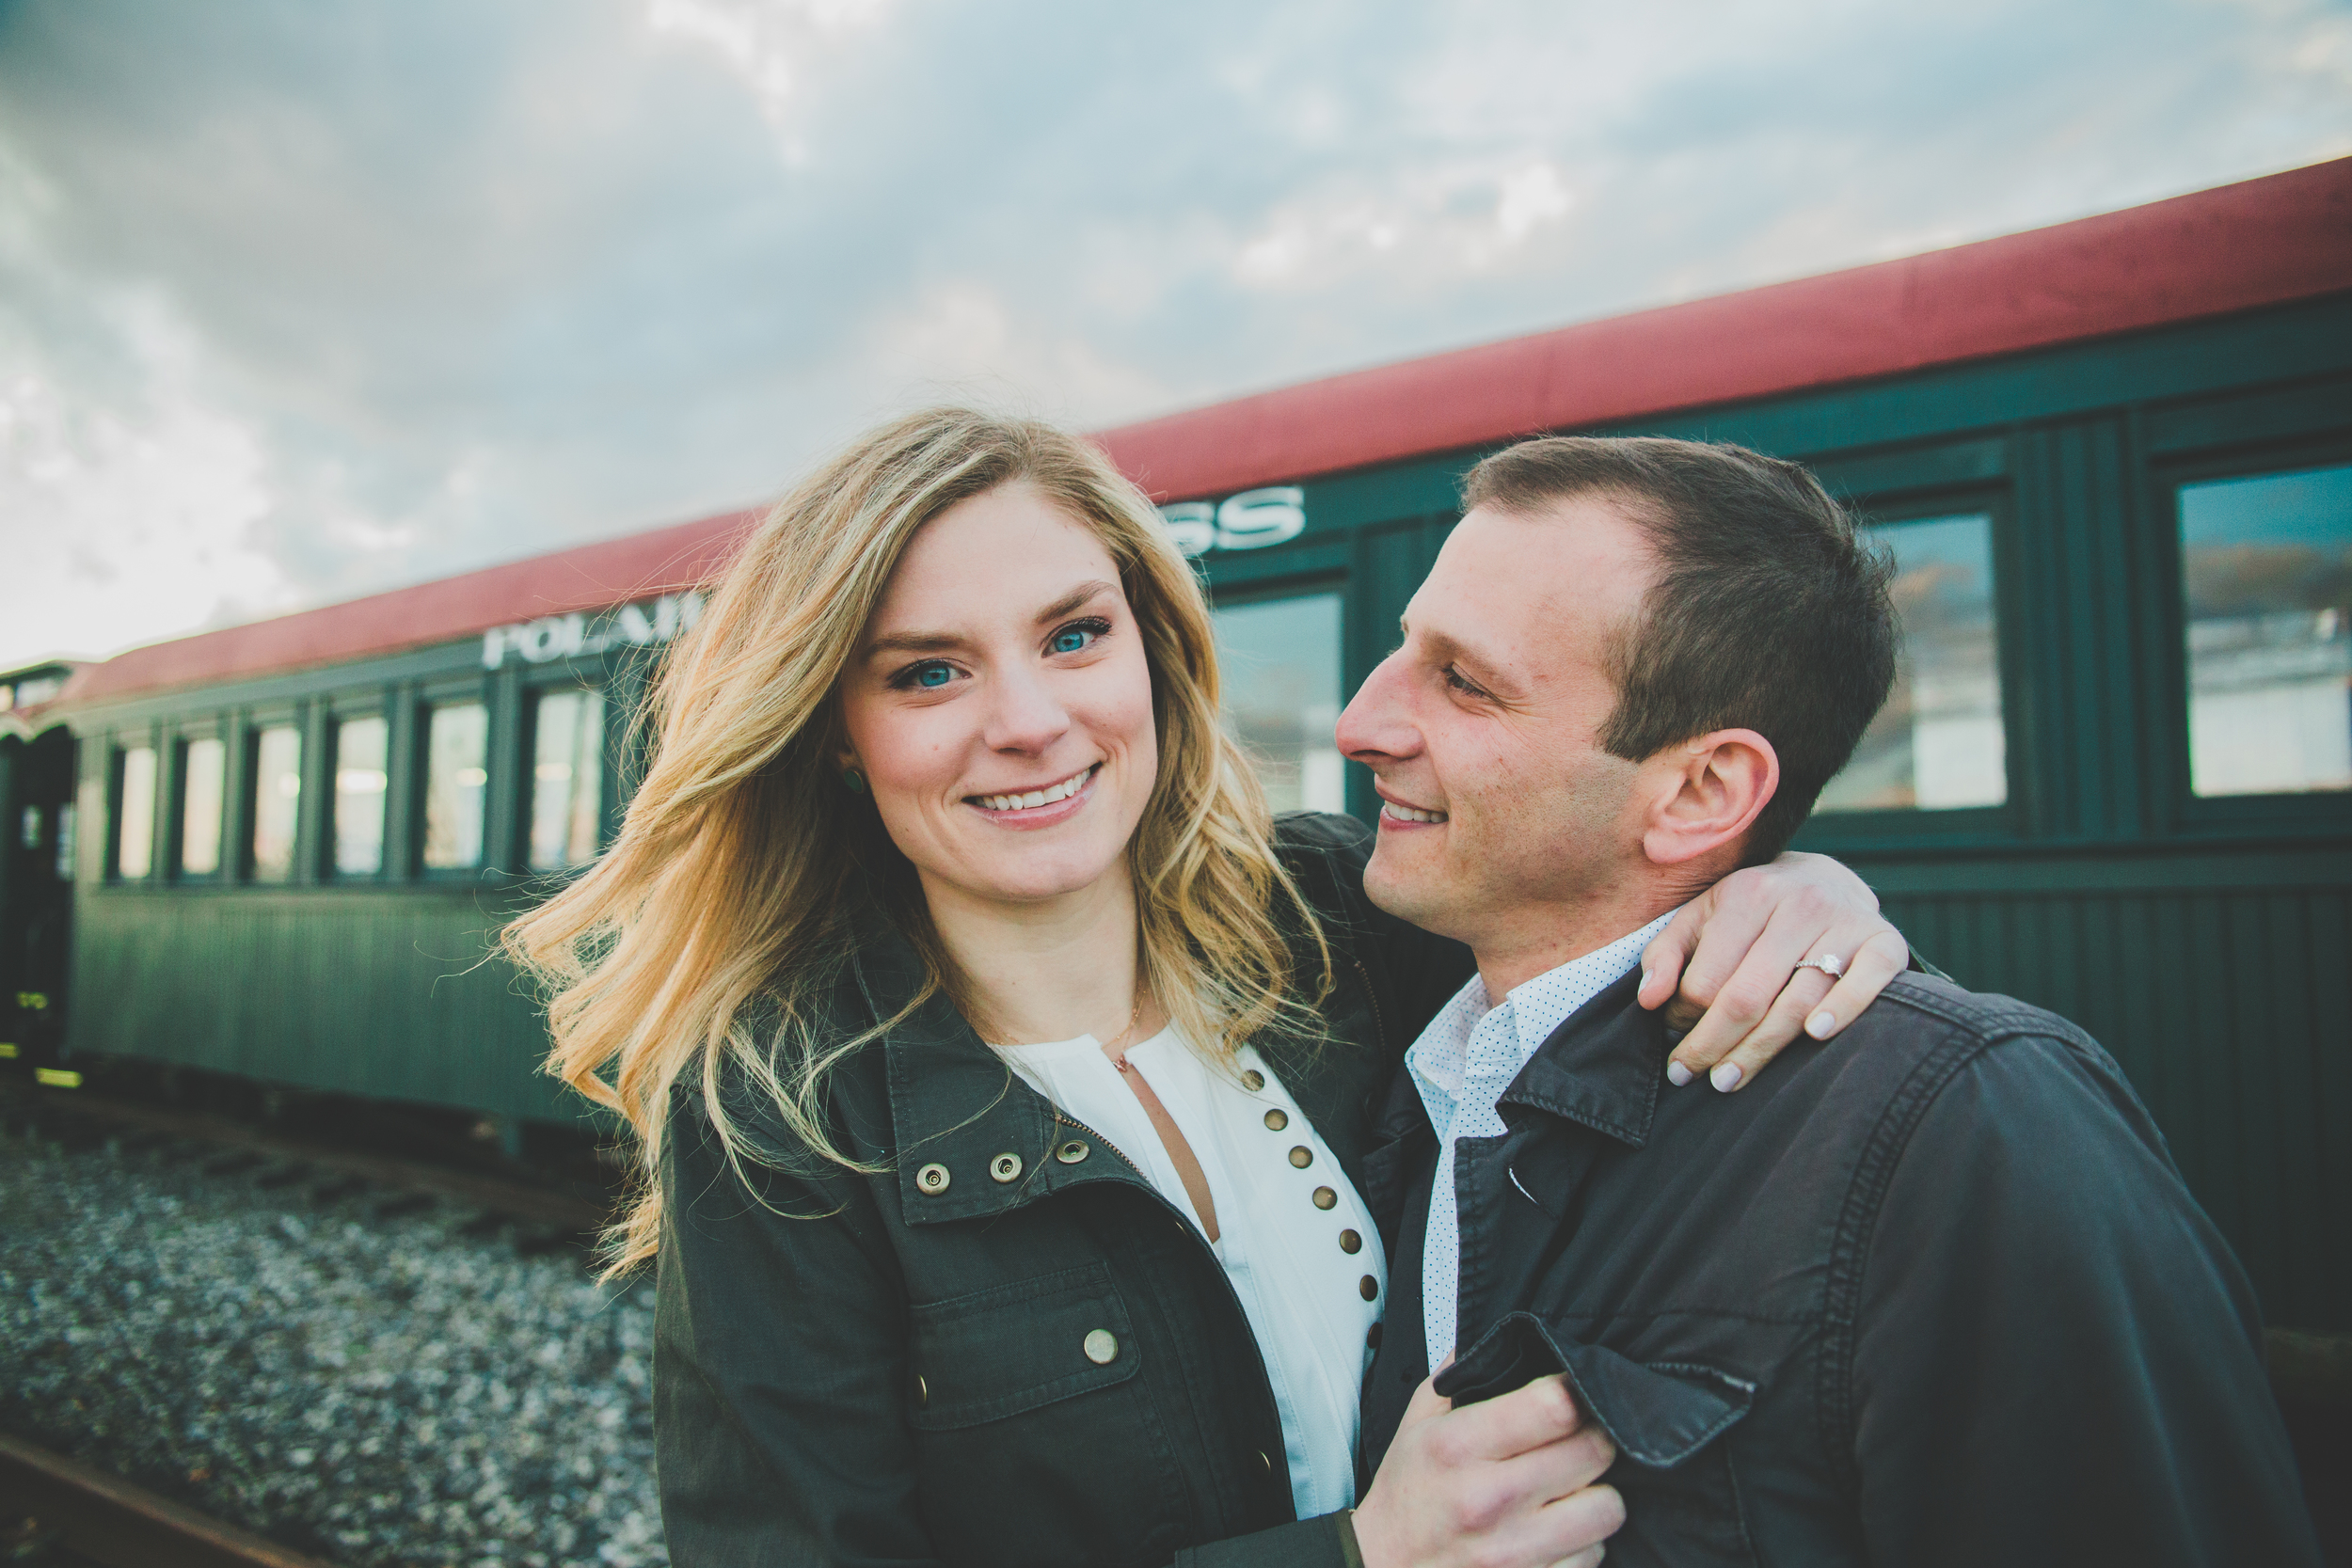 042415_jamiemercuriophoto_engagement-session-7.jpg